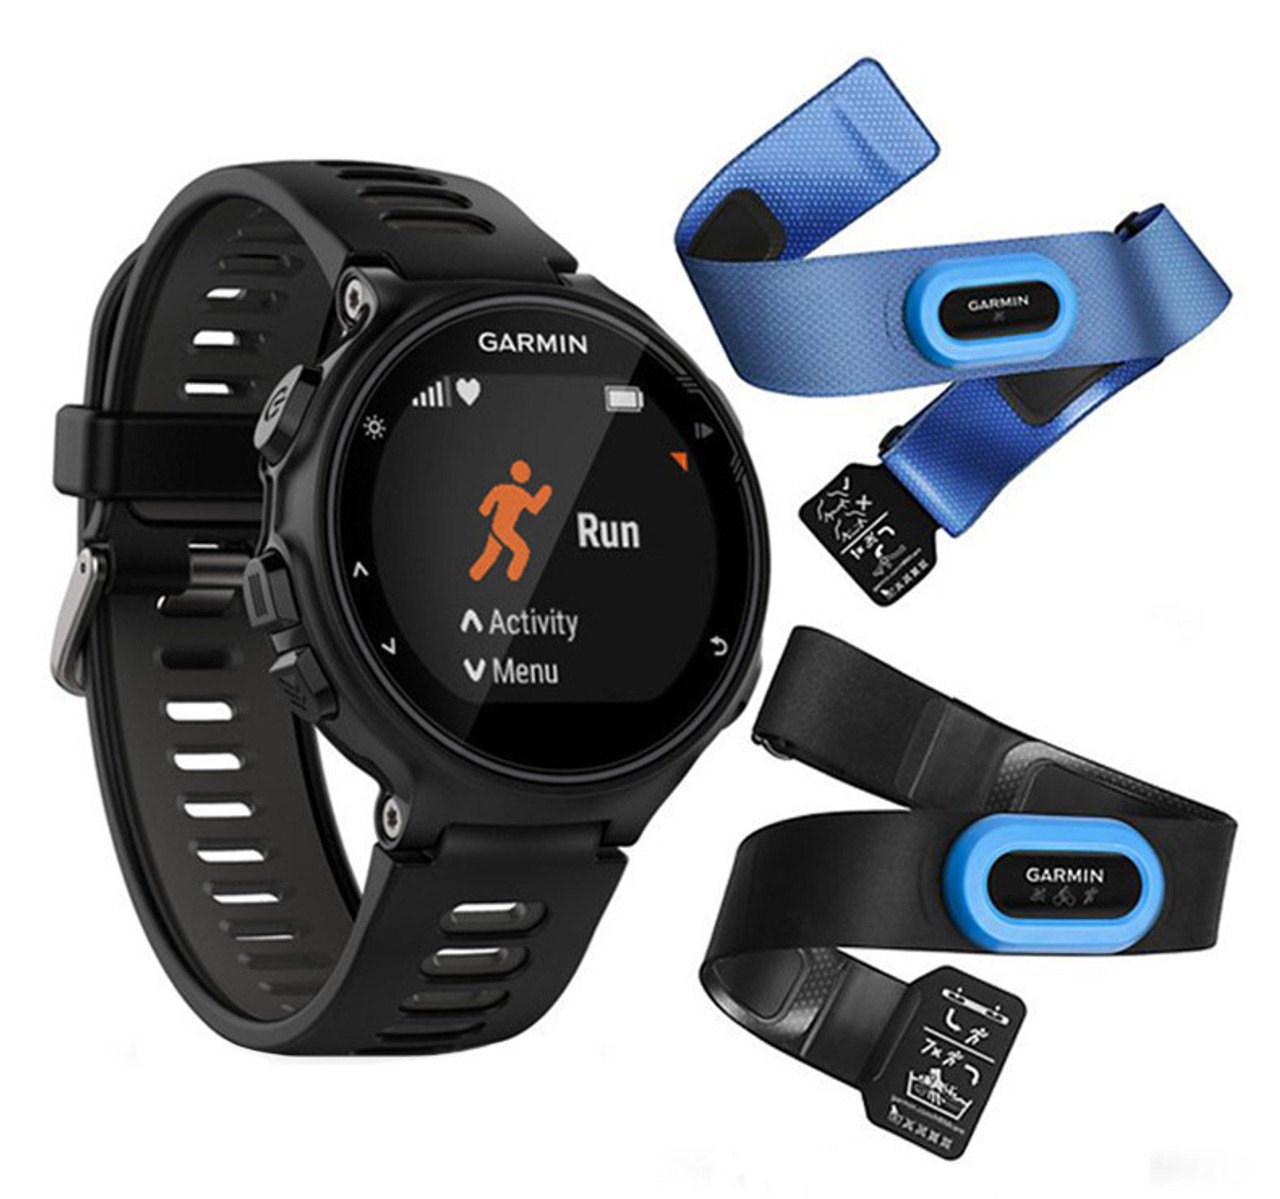 93cf48323 Garmin Forerunner 935 GPS Watch Bundle Black - Glory Cycles